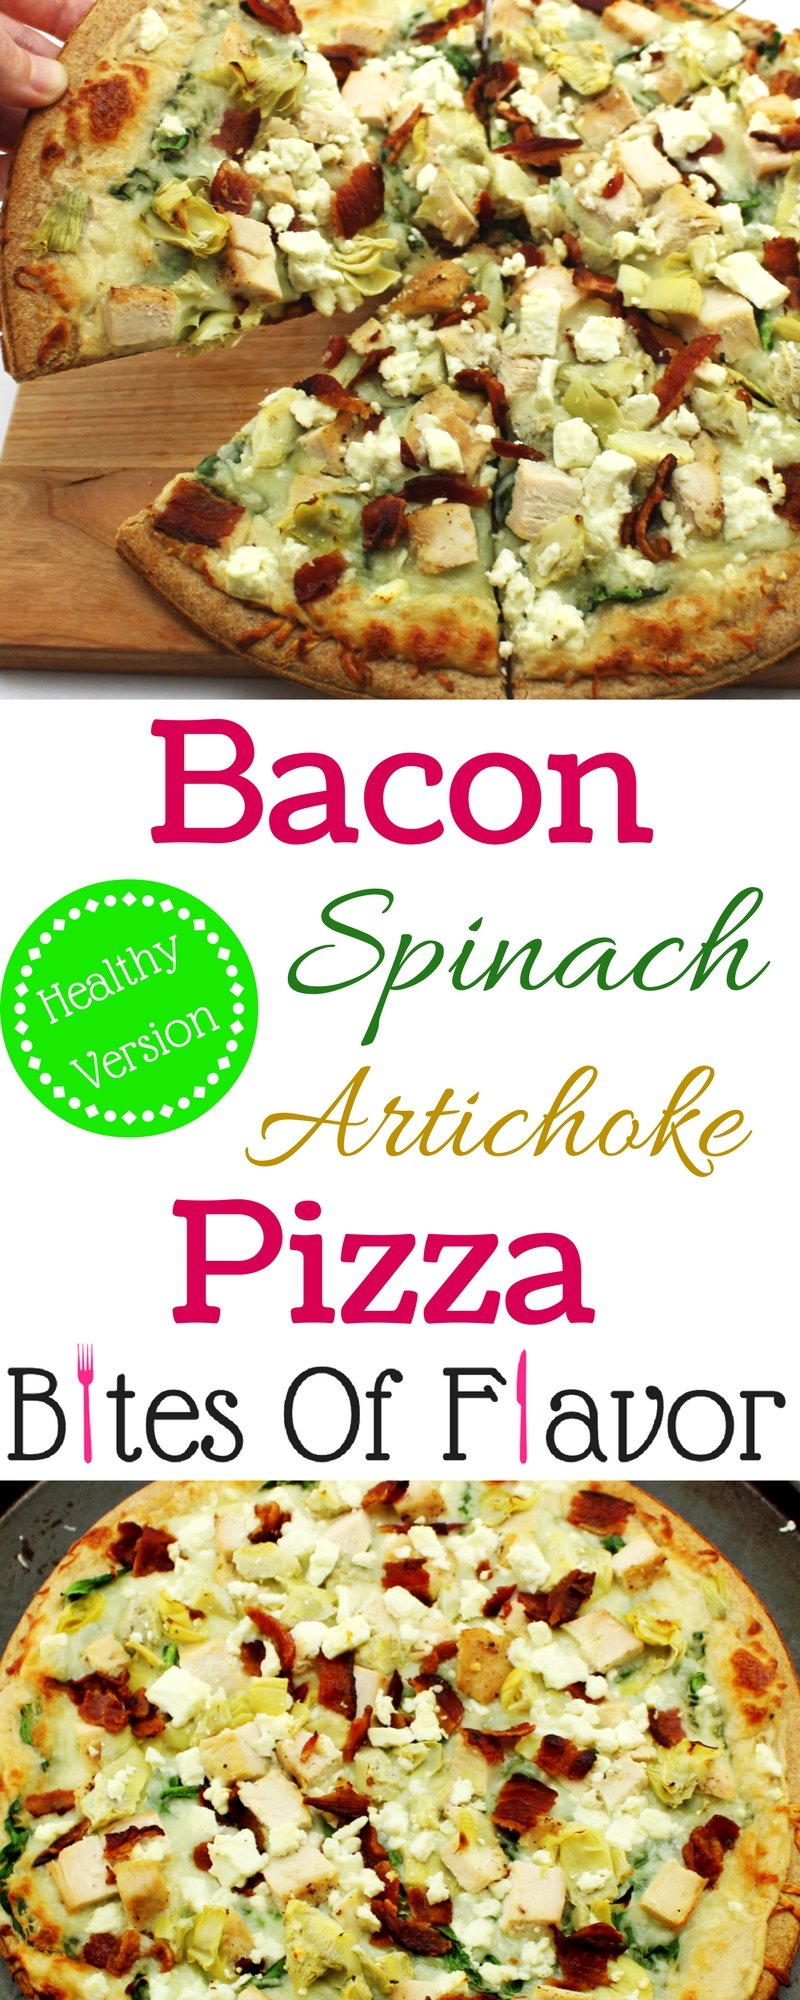 Guilt free Bacon Spinach Artichoke Pizza with homemade garlic cream sauce! Easy to make, low fat, and cooks in 12 minutes! Weight Watcher Friendly recipe. www.bitesofflavor.com